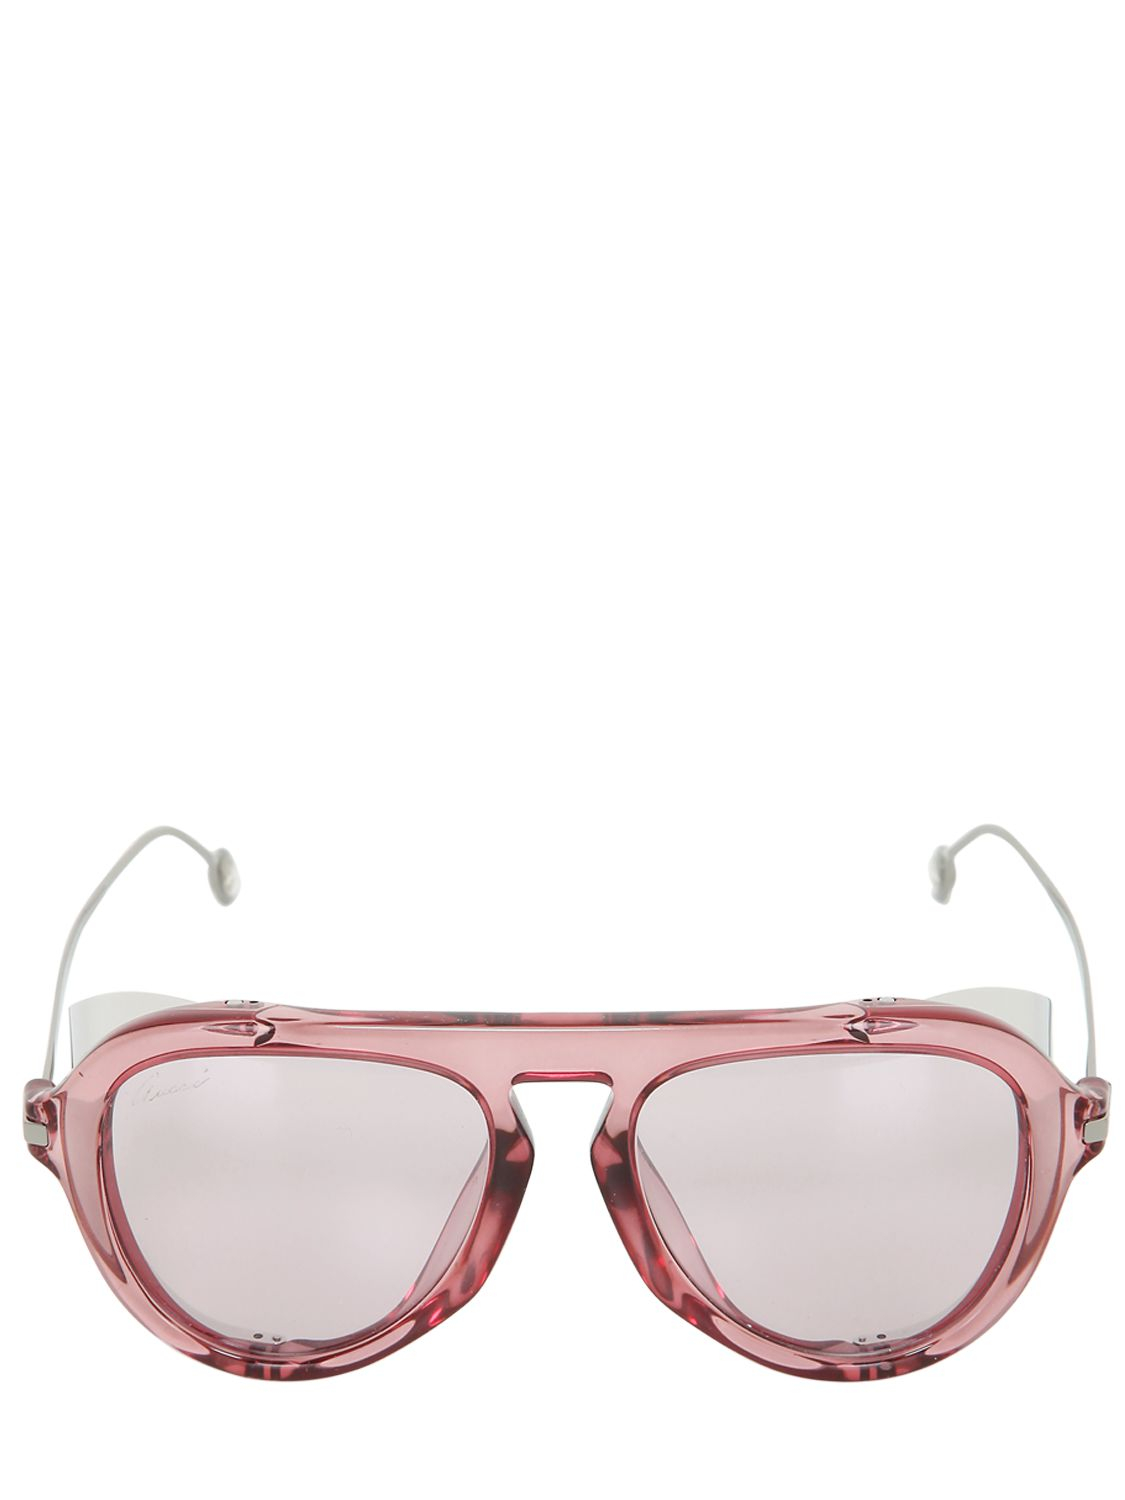 Gucci Aviator Sunglasses W/ Metal Blinders in Pink | Lyst